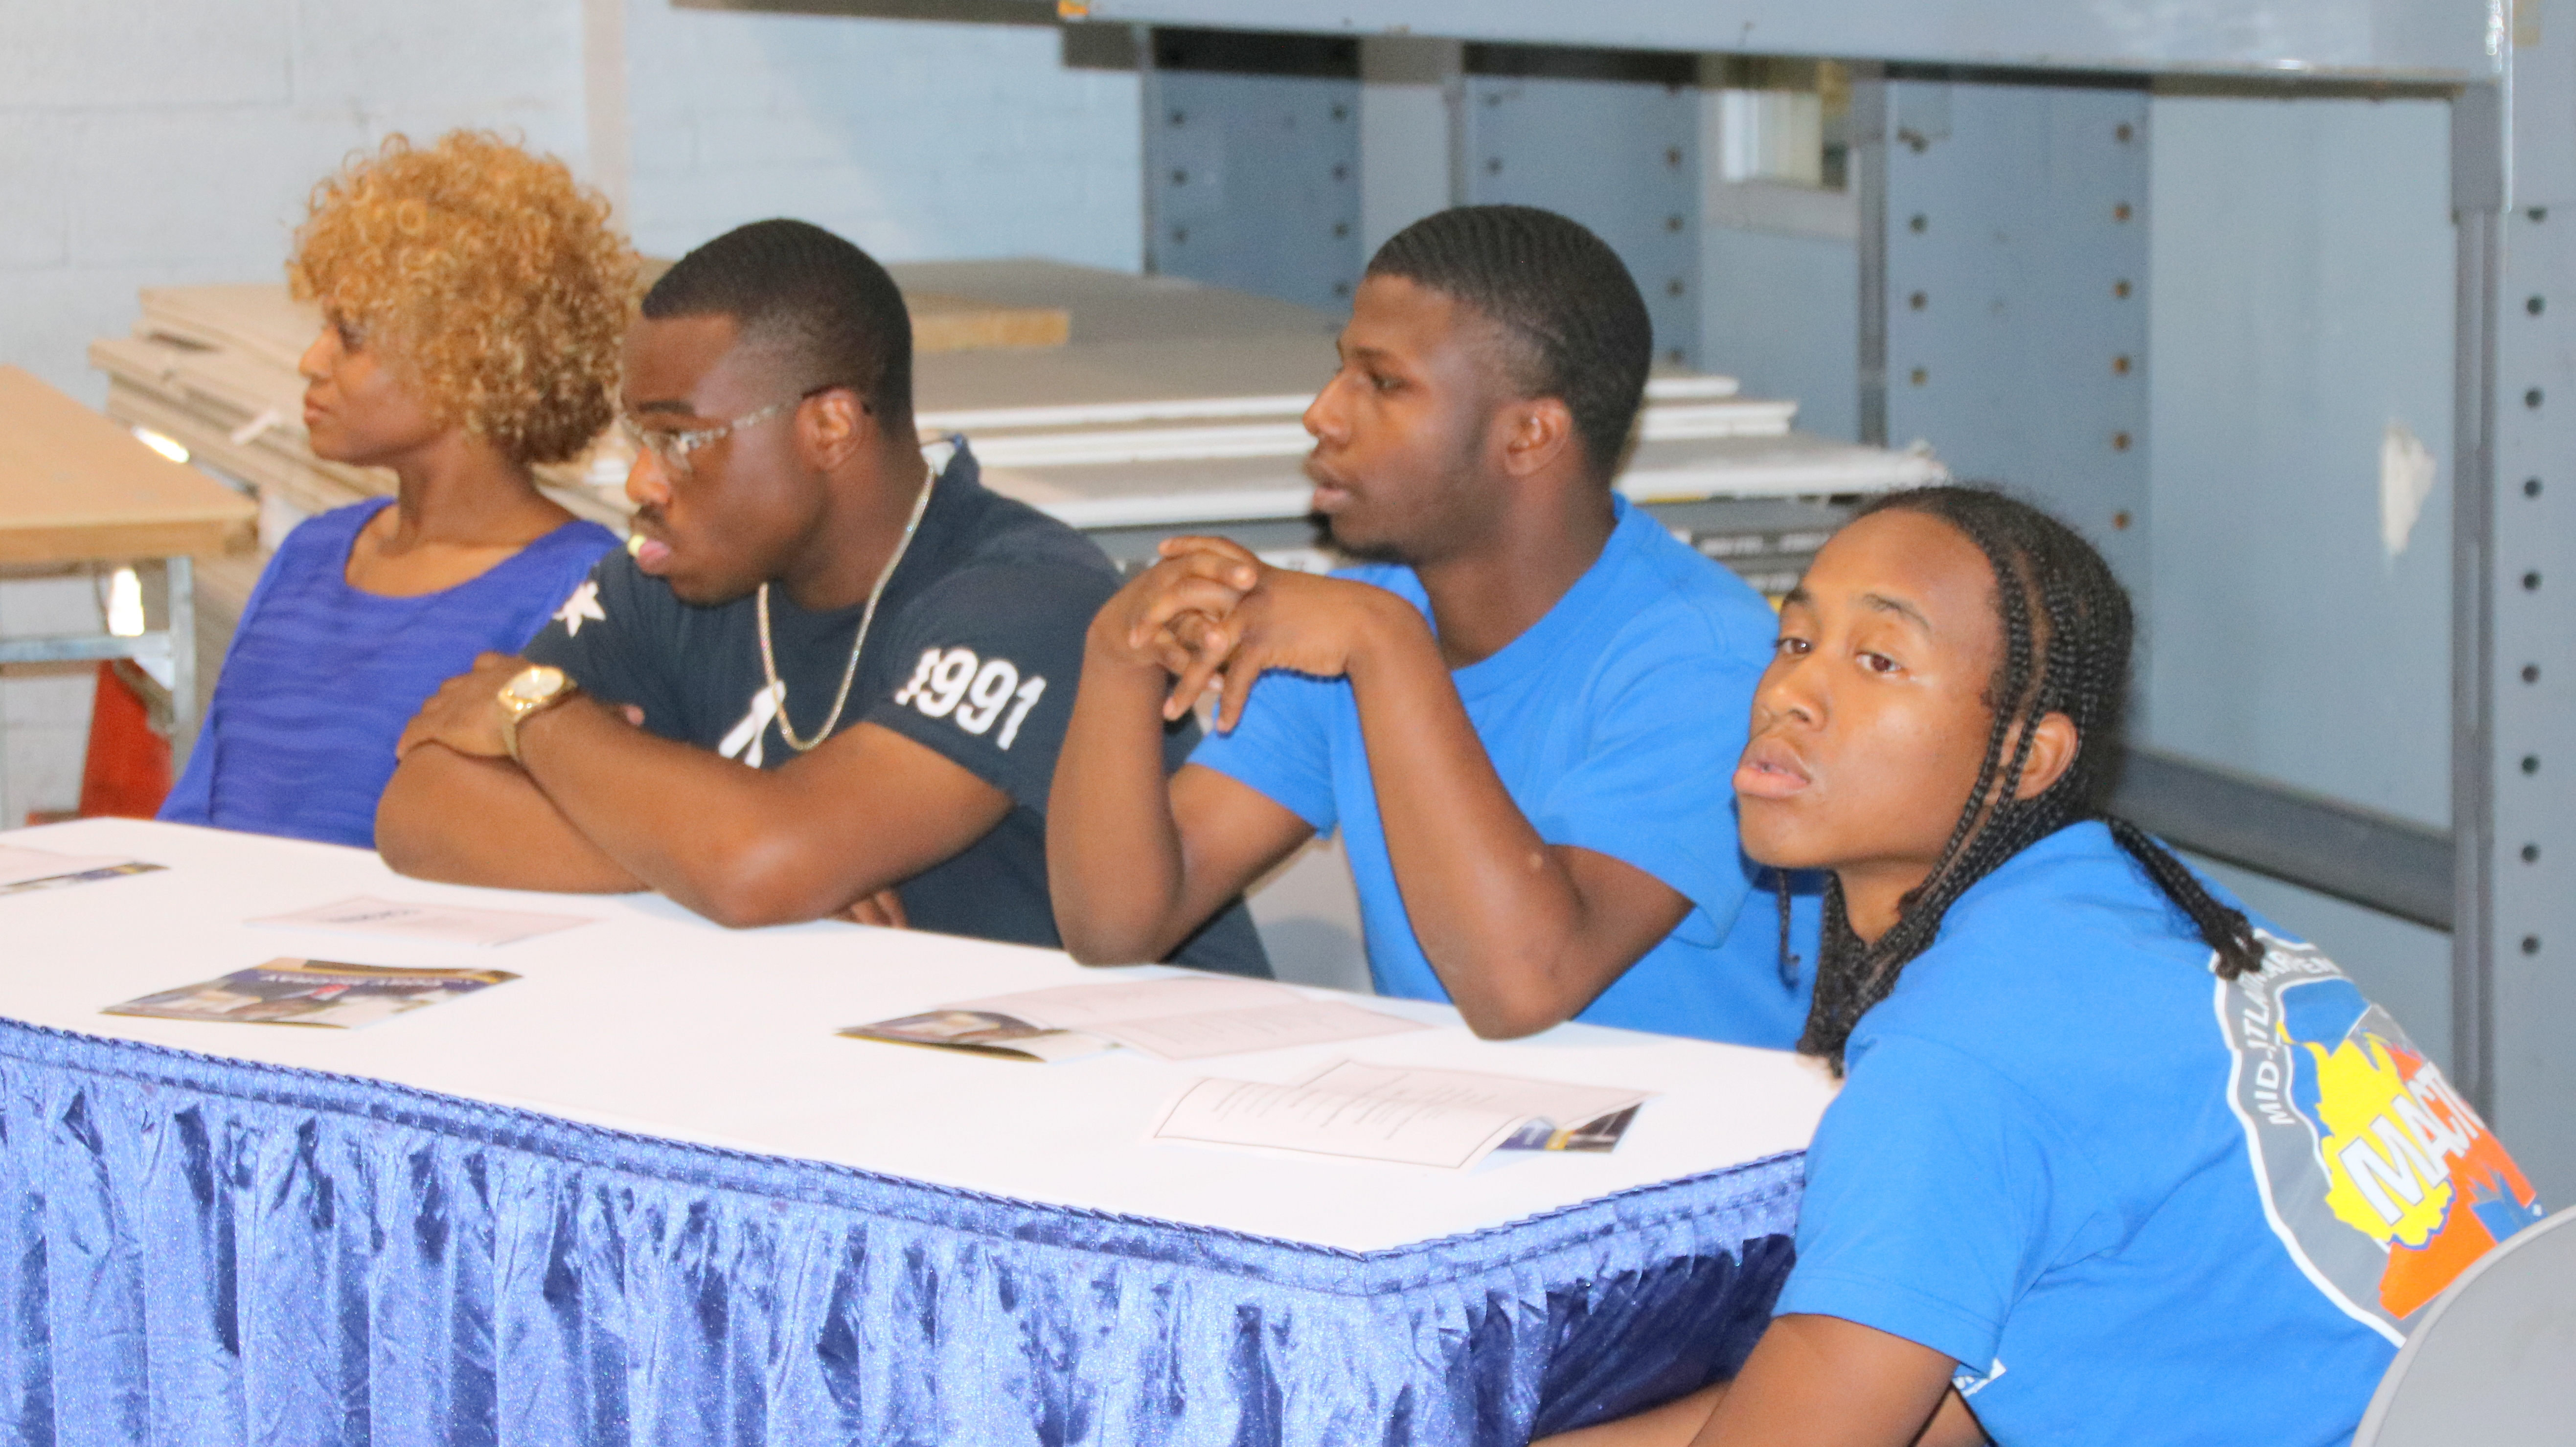 Sha-quita Graham, Neko Whitfield-Smith, Rashard Phillips and Mark Hill at the Carpenters' union pre-apprenticeship graduation luncheon. (Louis Krauss)